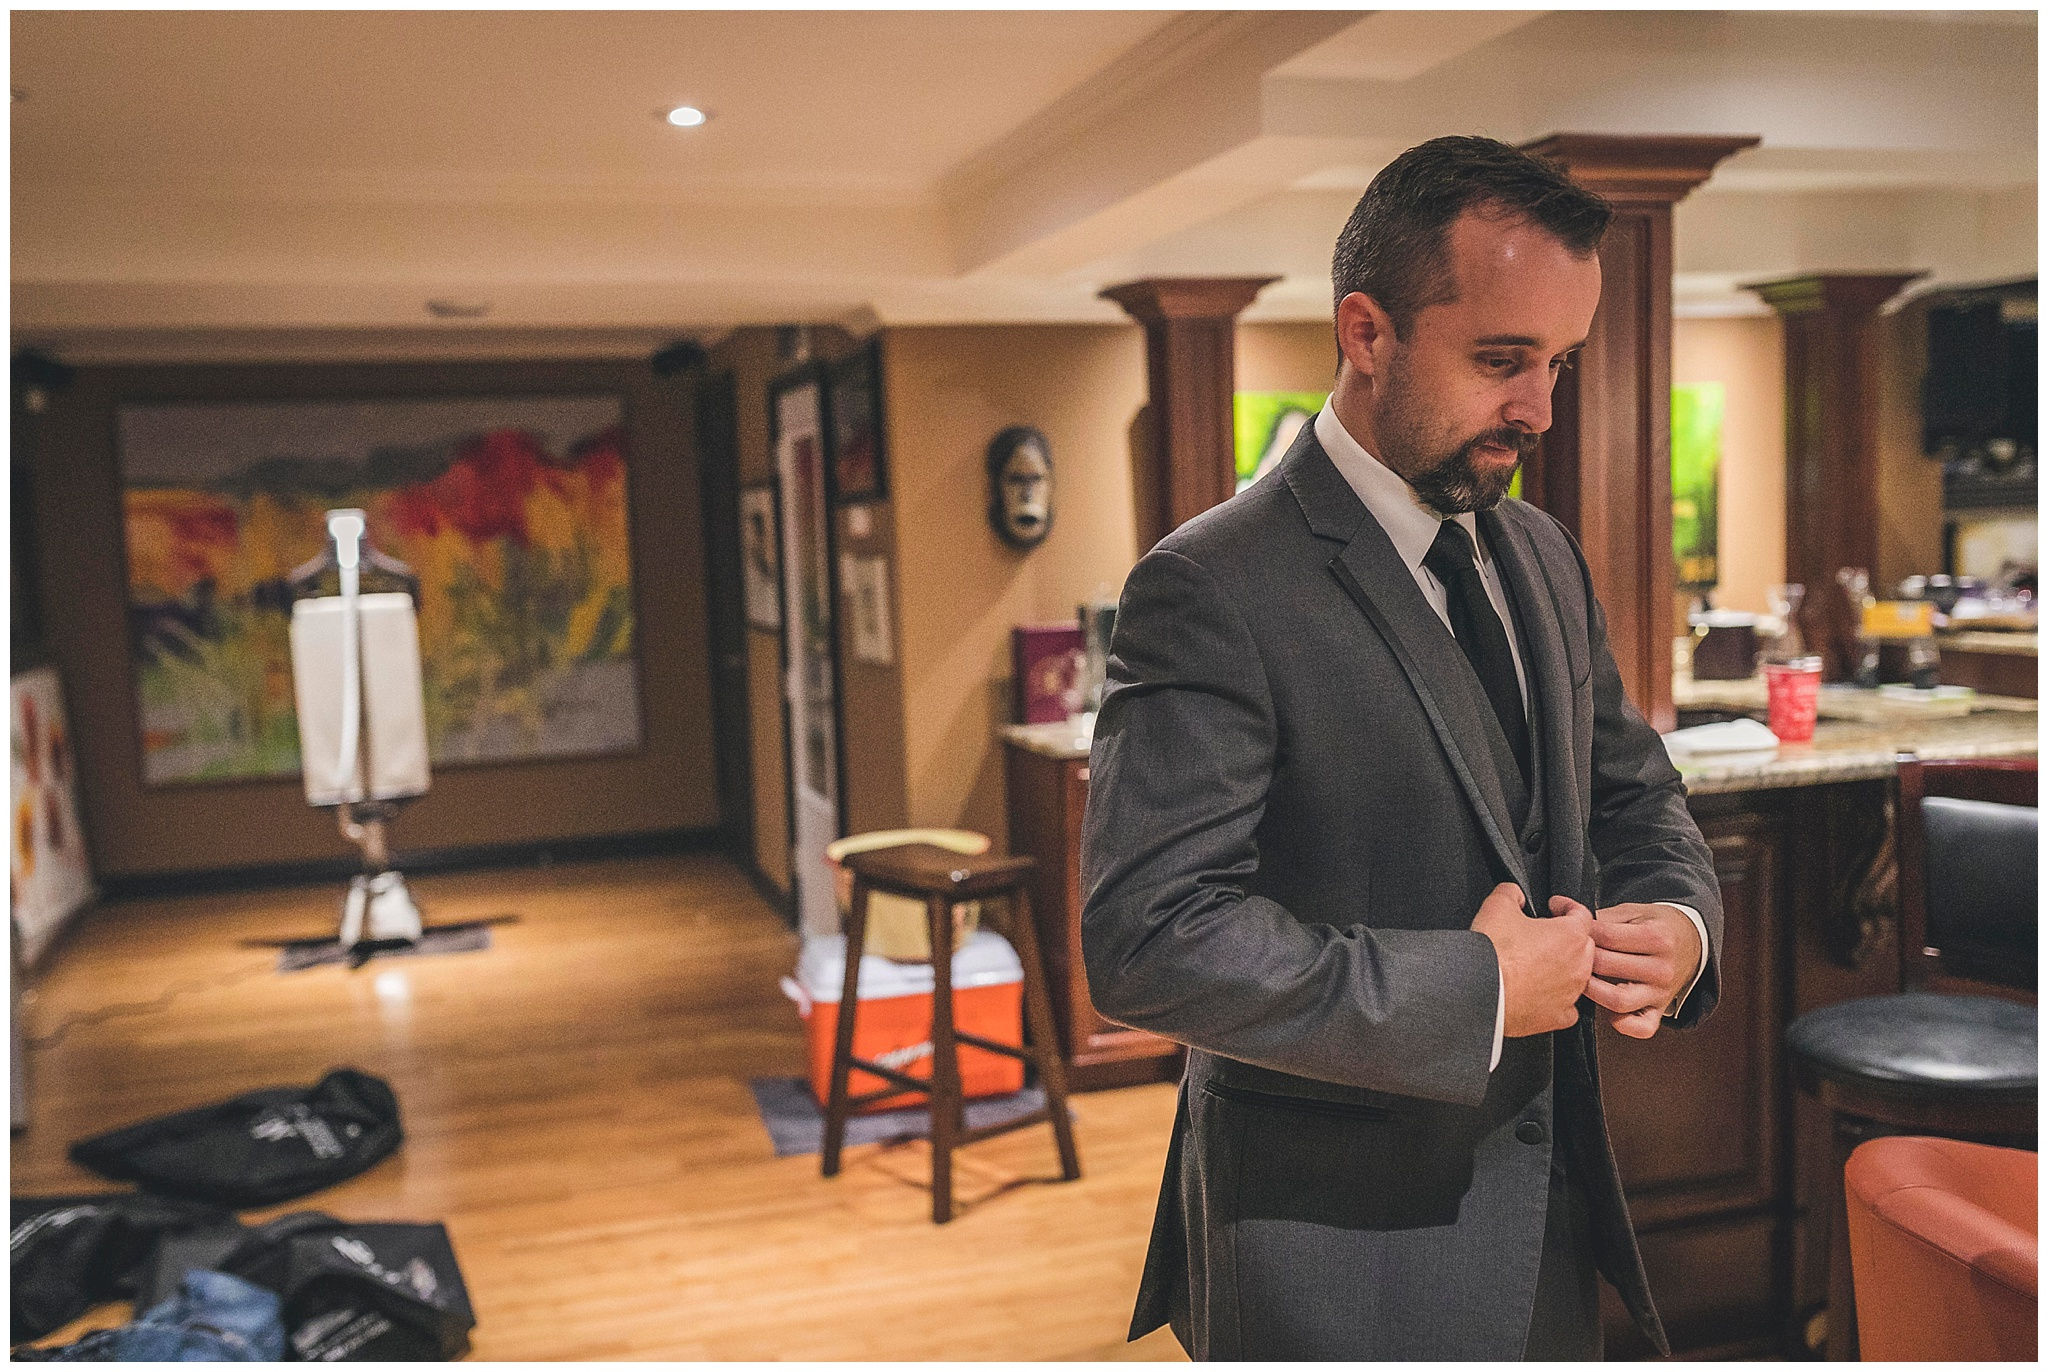 Groom adjusts his suit jacket prior to his wedding